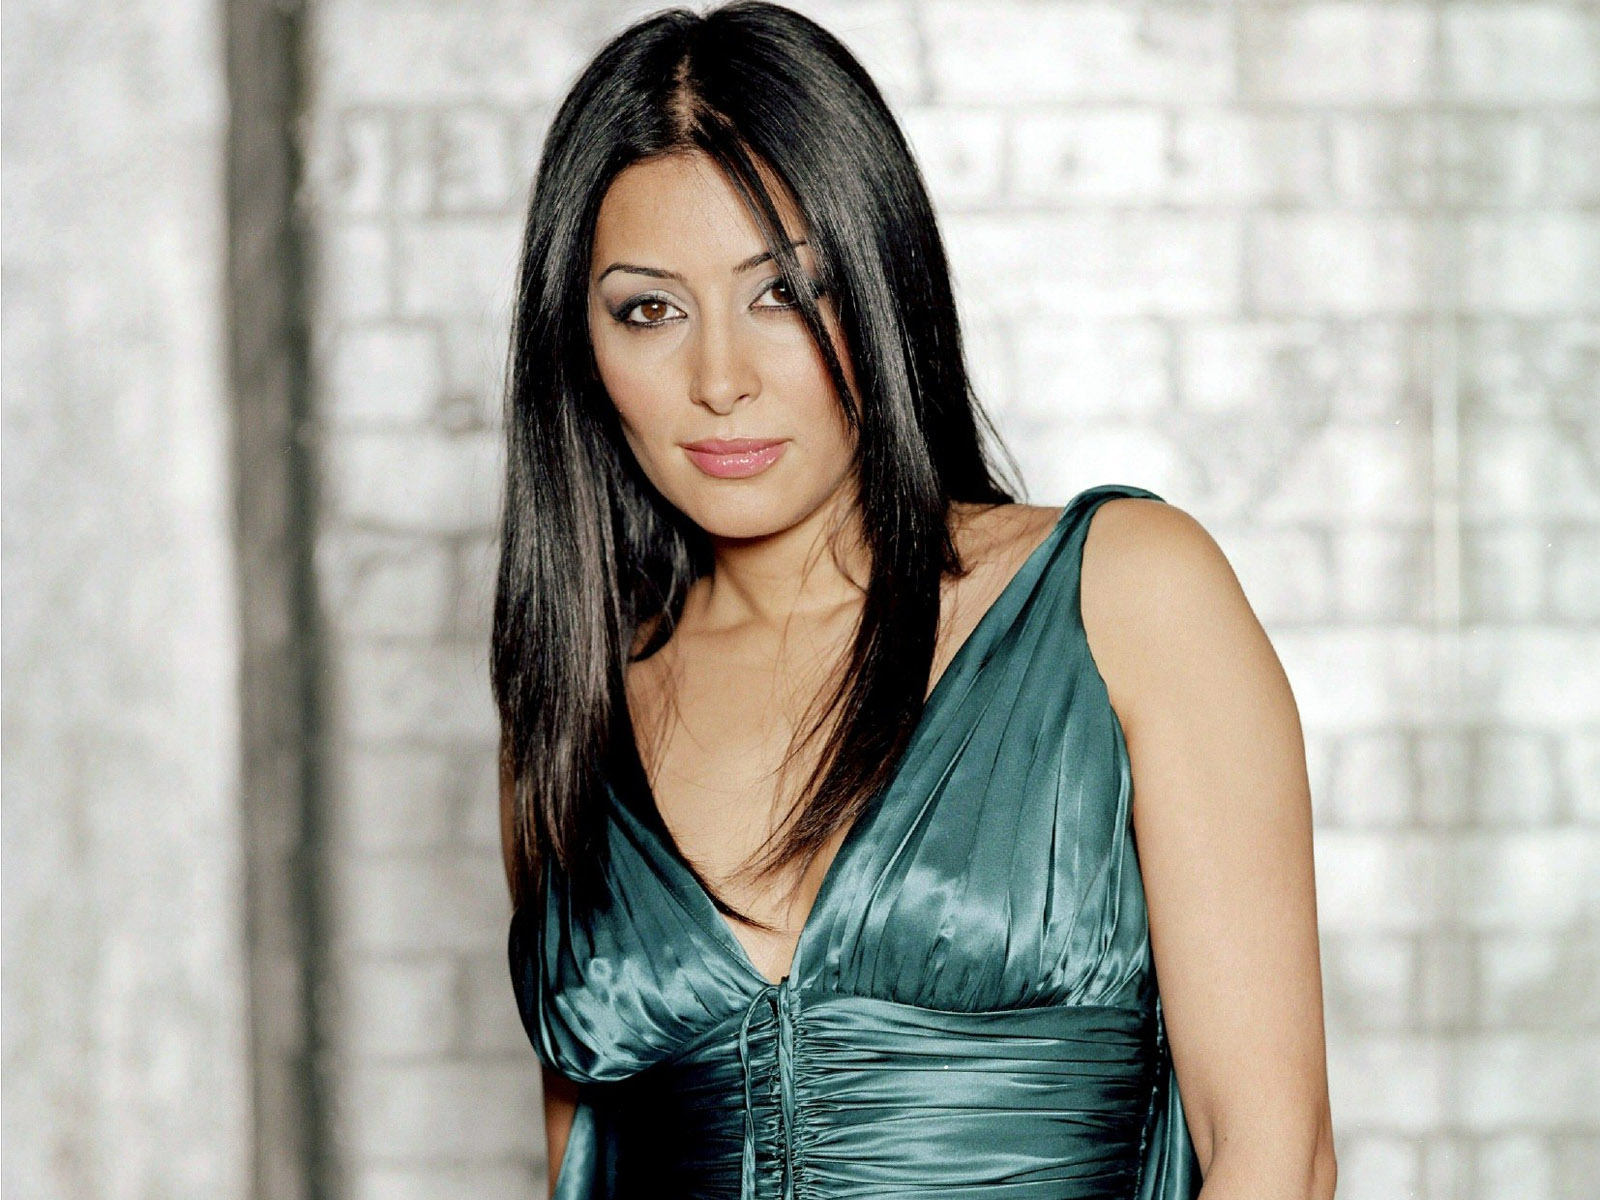 Watch Laila Rouass (born 1971) video